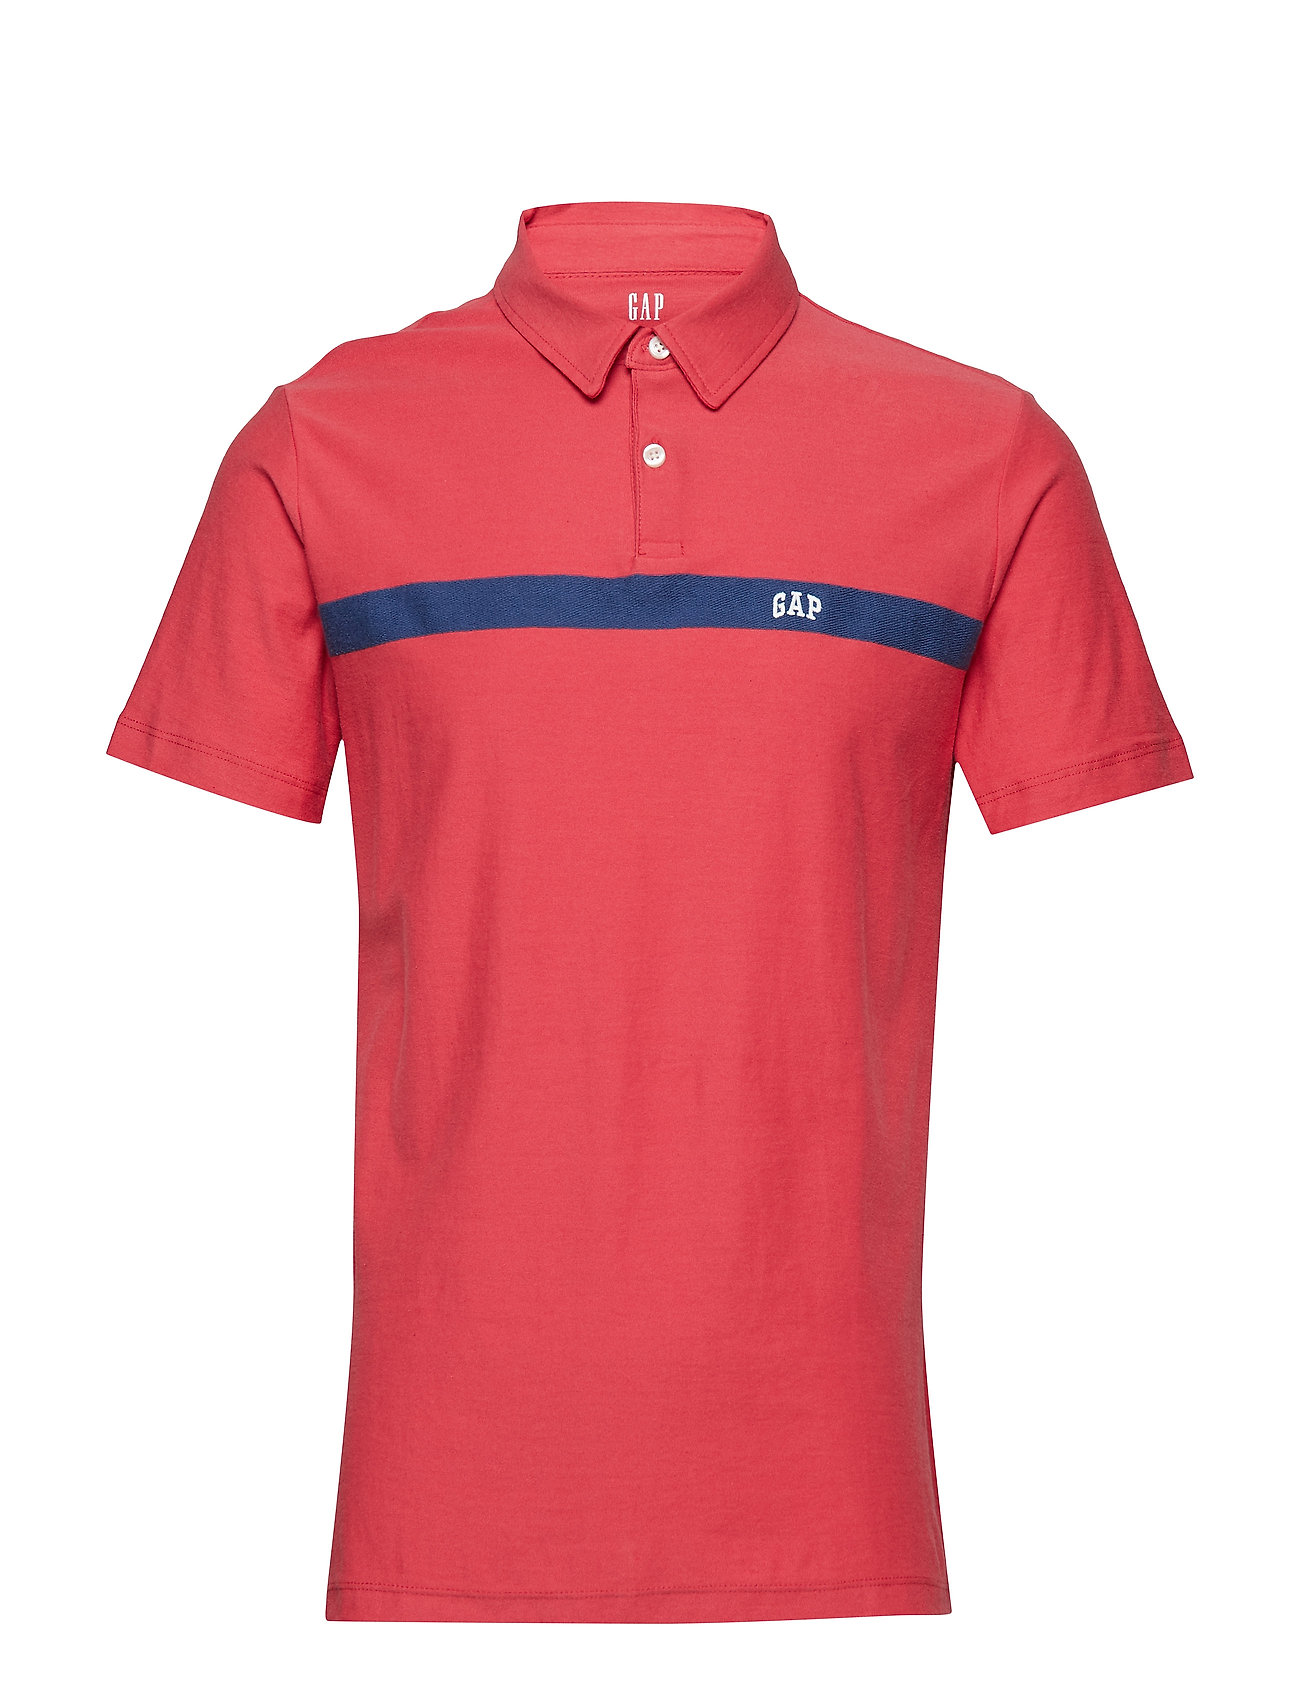 GAP FRANCH XLS JERSEY LOGO POLO - WEATHERED RED